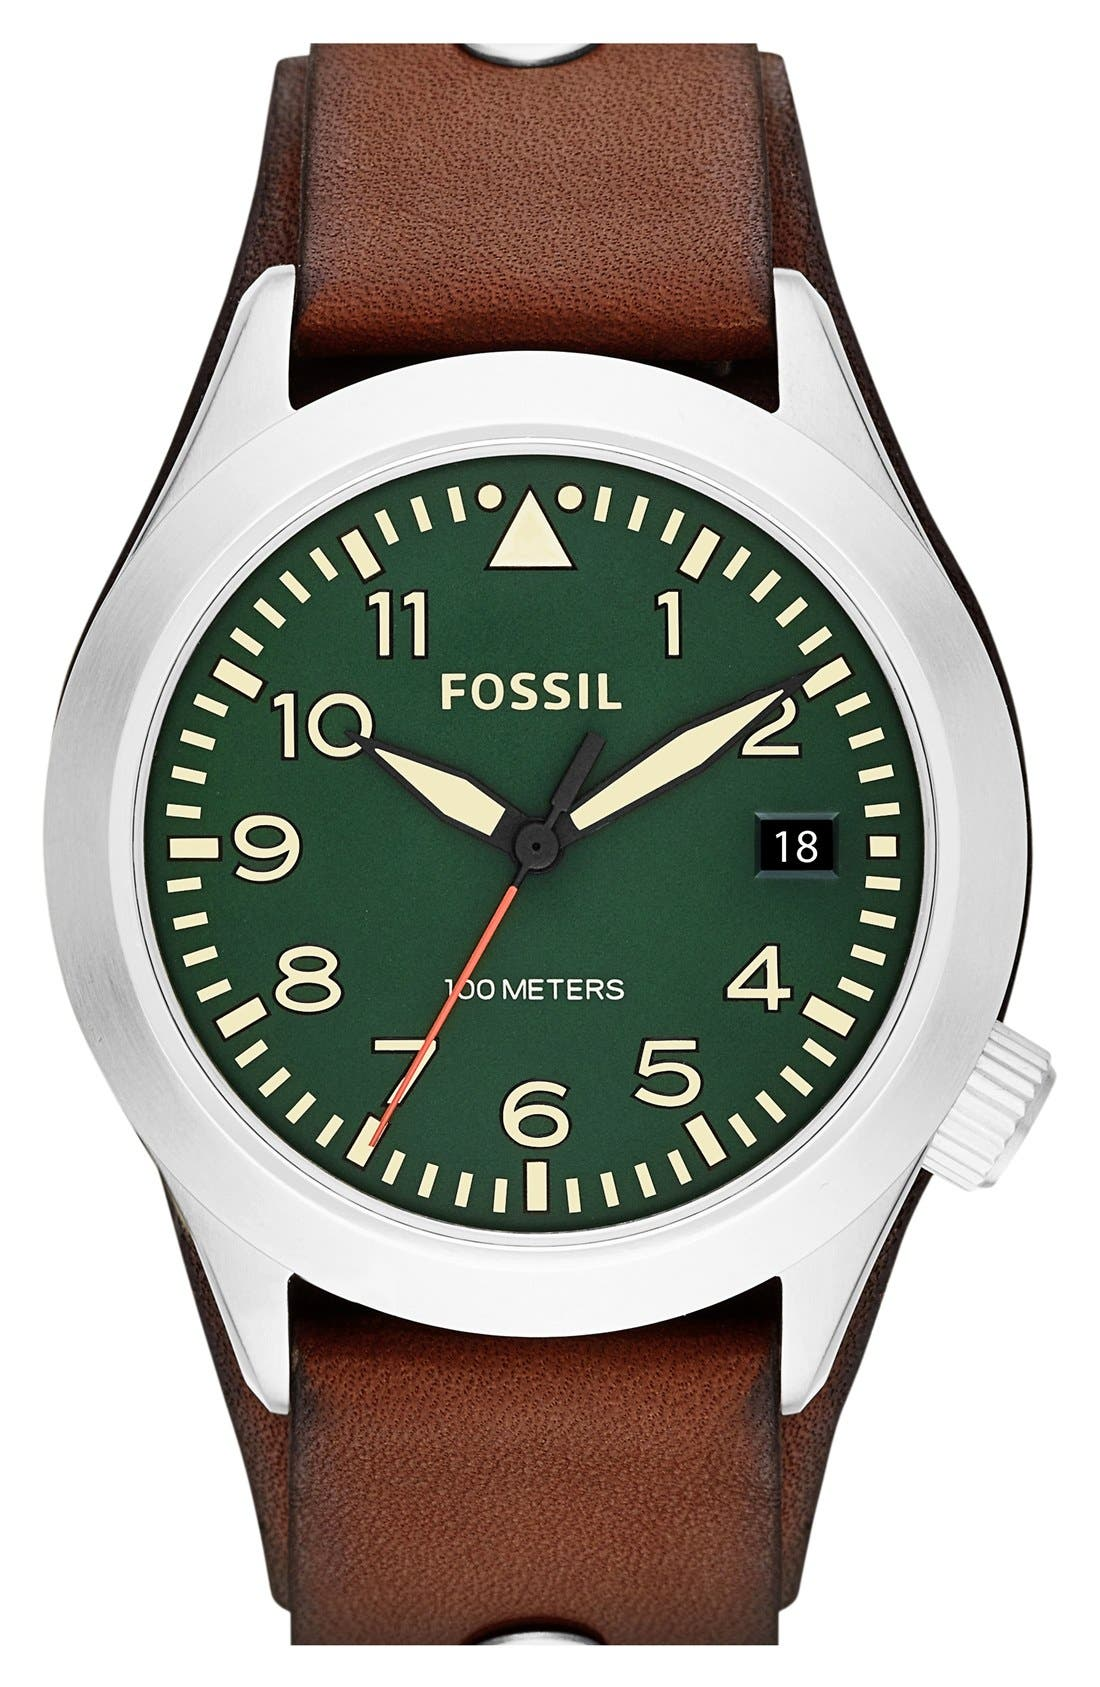 Alternate Image 1 Selected - Fossil 'Aeroflite' Leather Strap Watch, 44mm